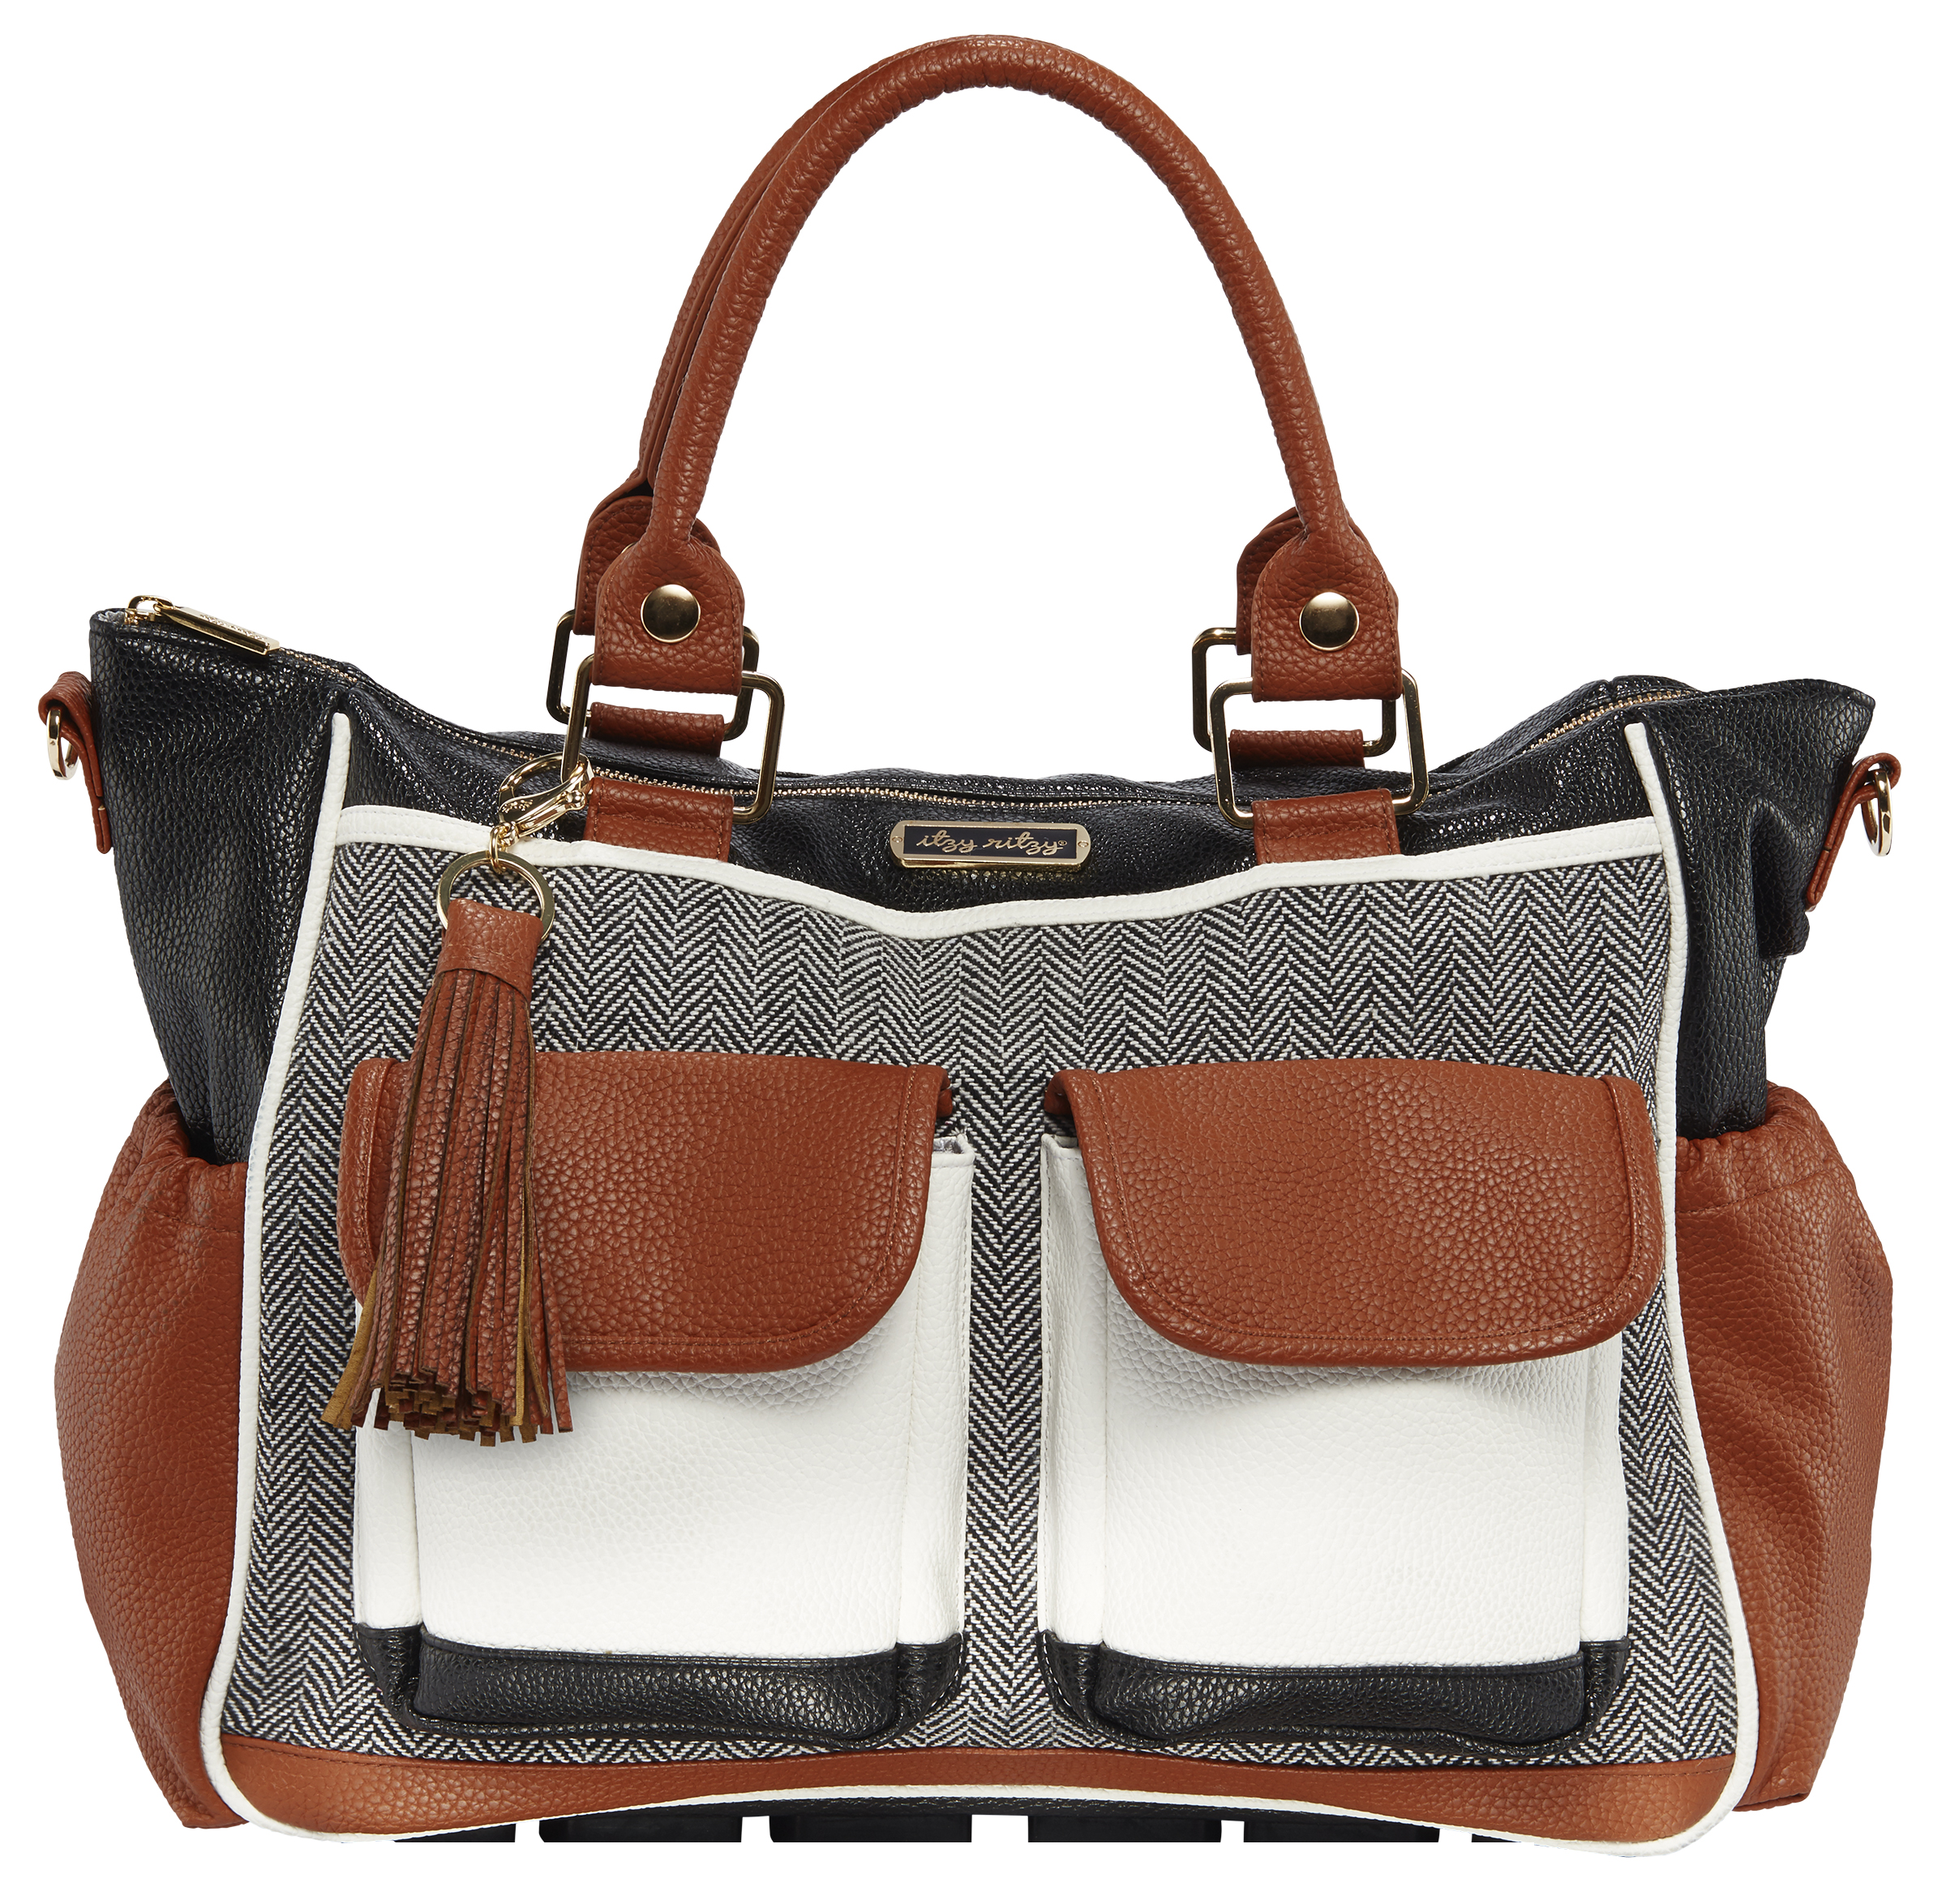 Itzy Ritzy Triple Threat Convertible Diaper Bag in Coffee and Cream by Itzy Ritzy